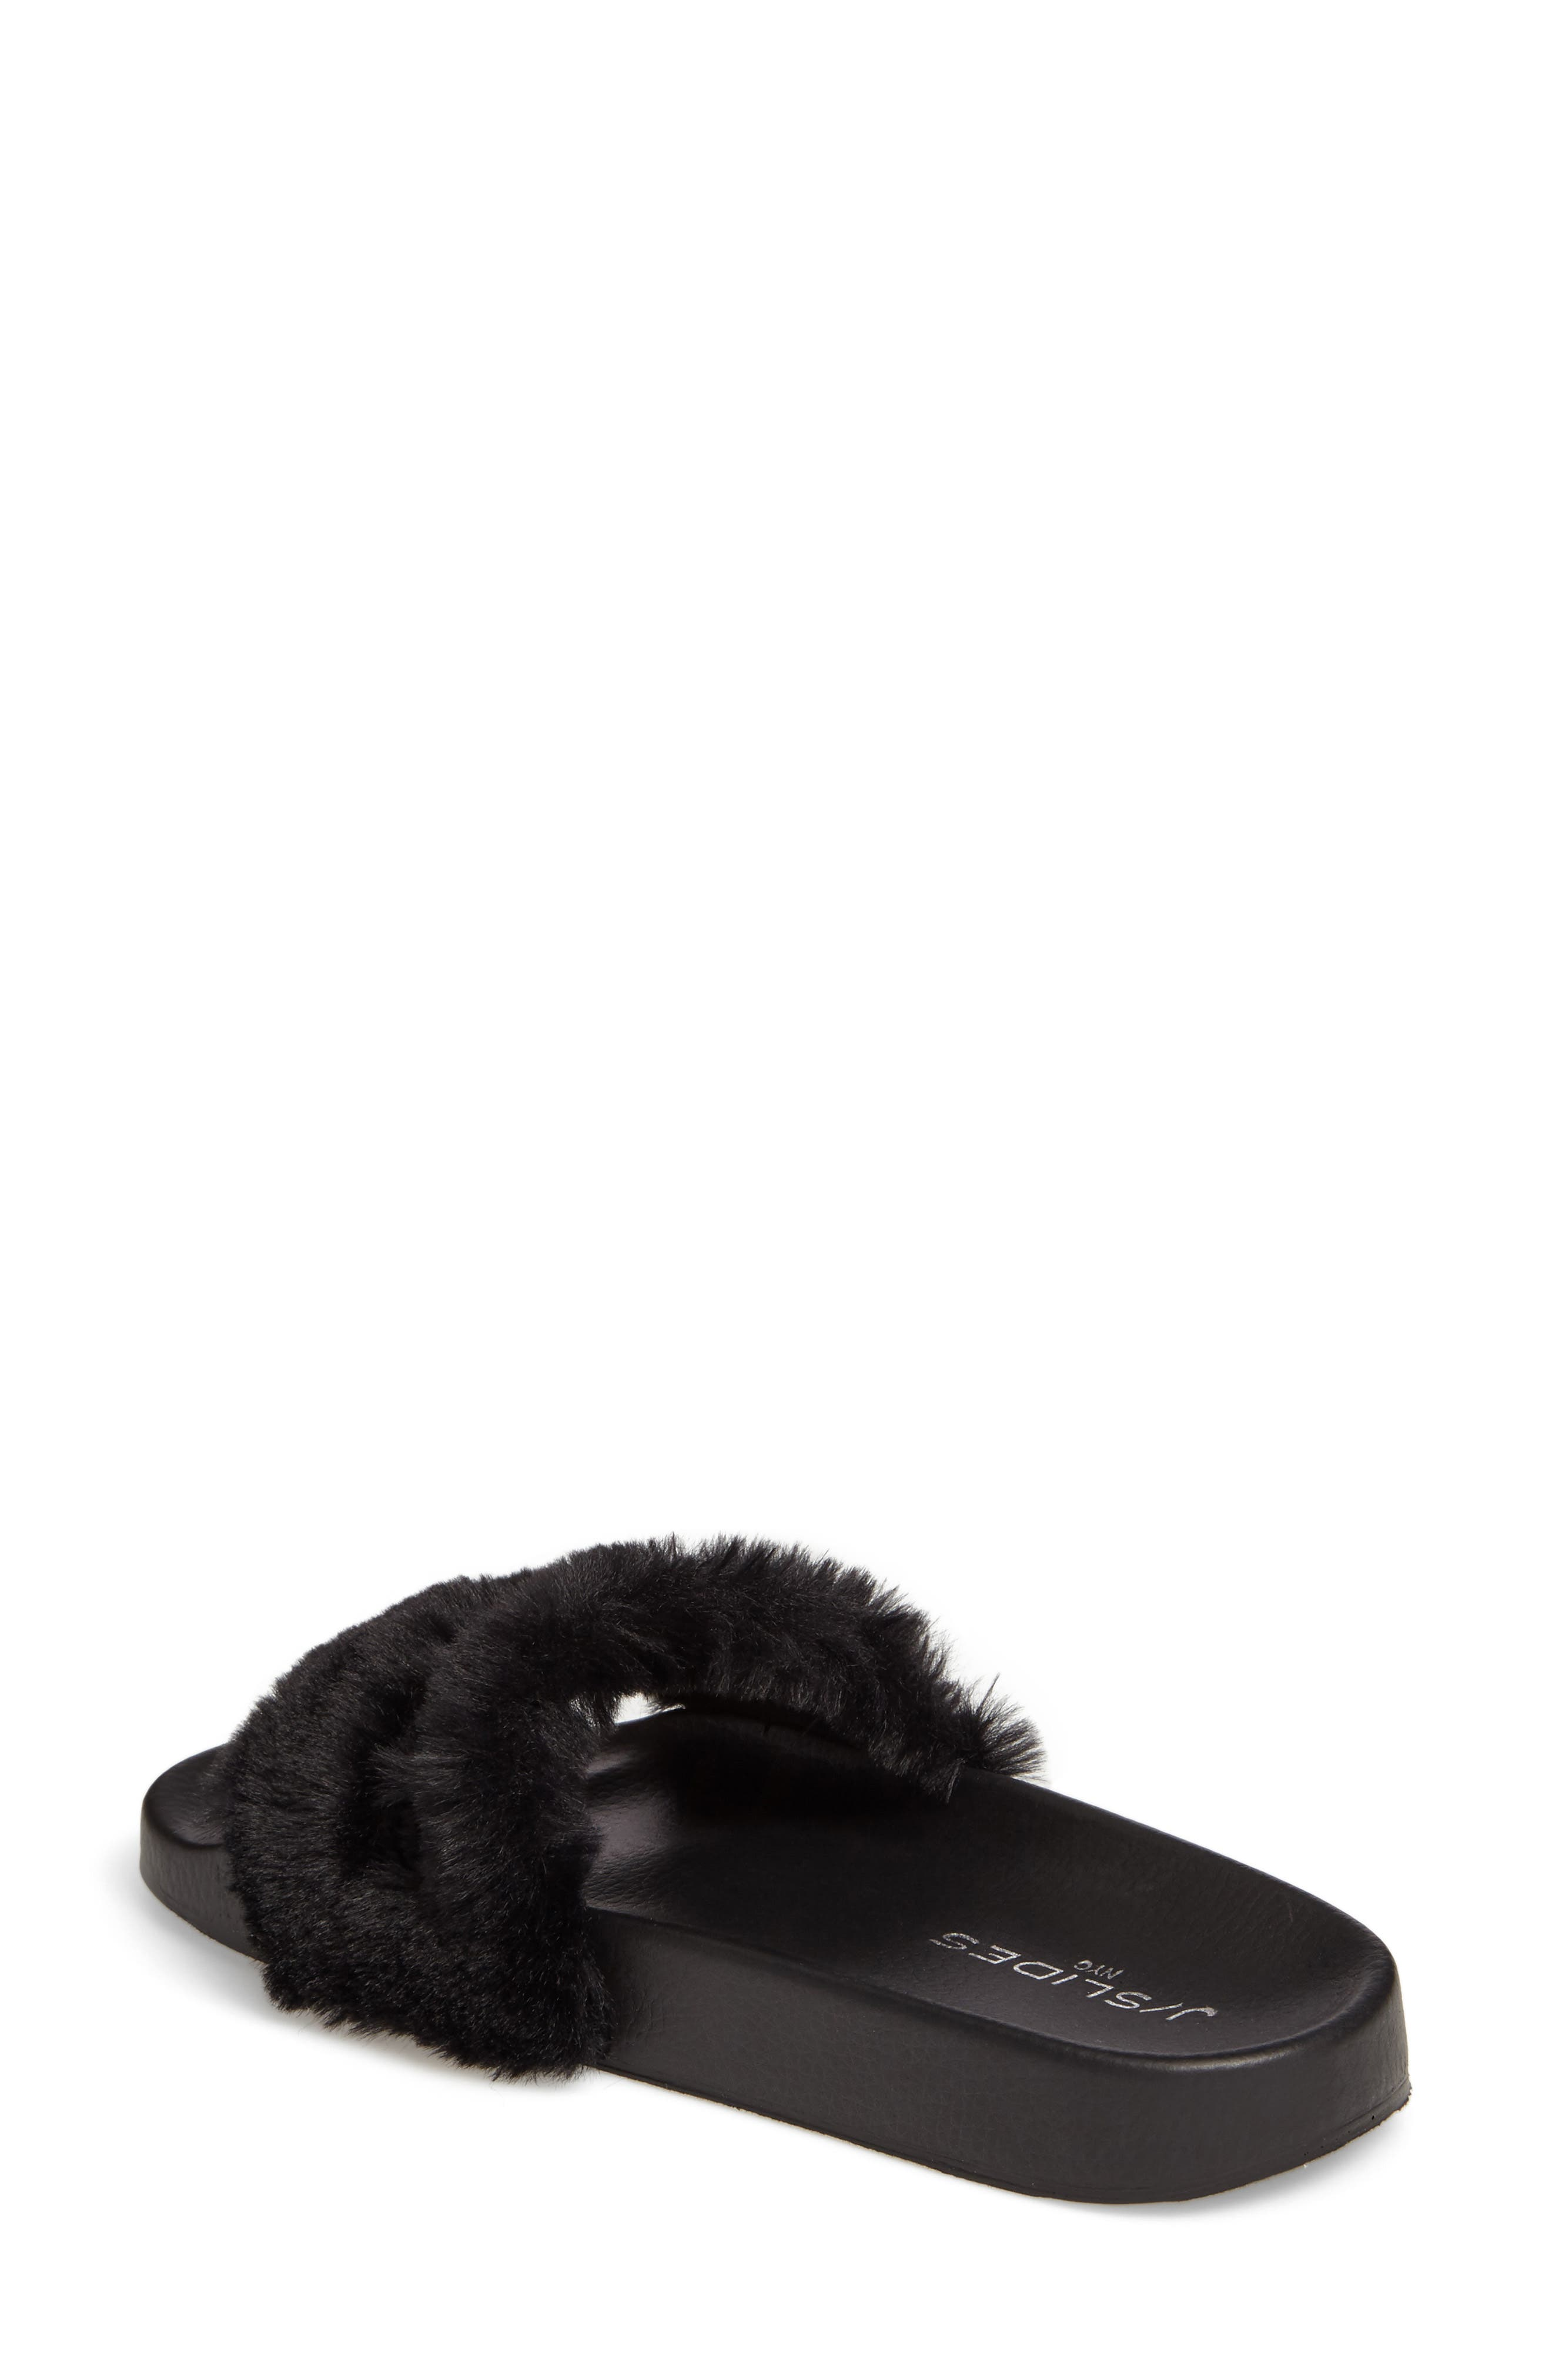 Samantha Faux Fur Slide,                             Alternate thumbnail 2, color,                             001